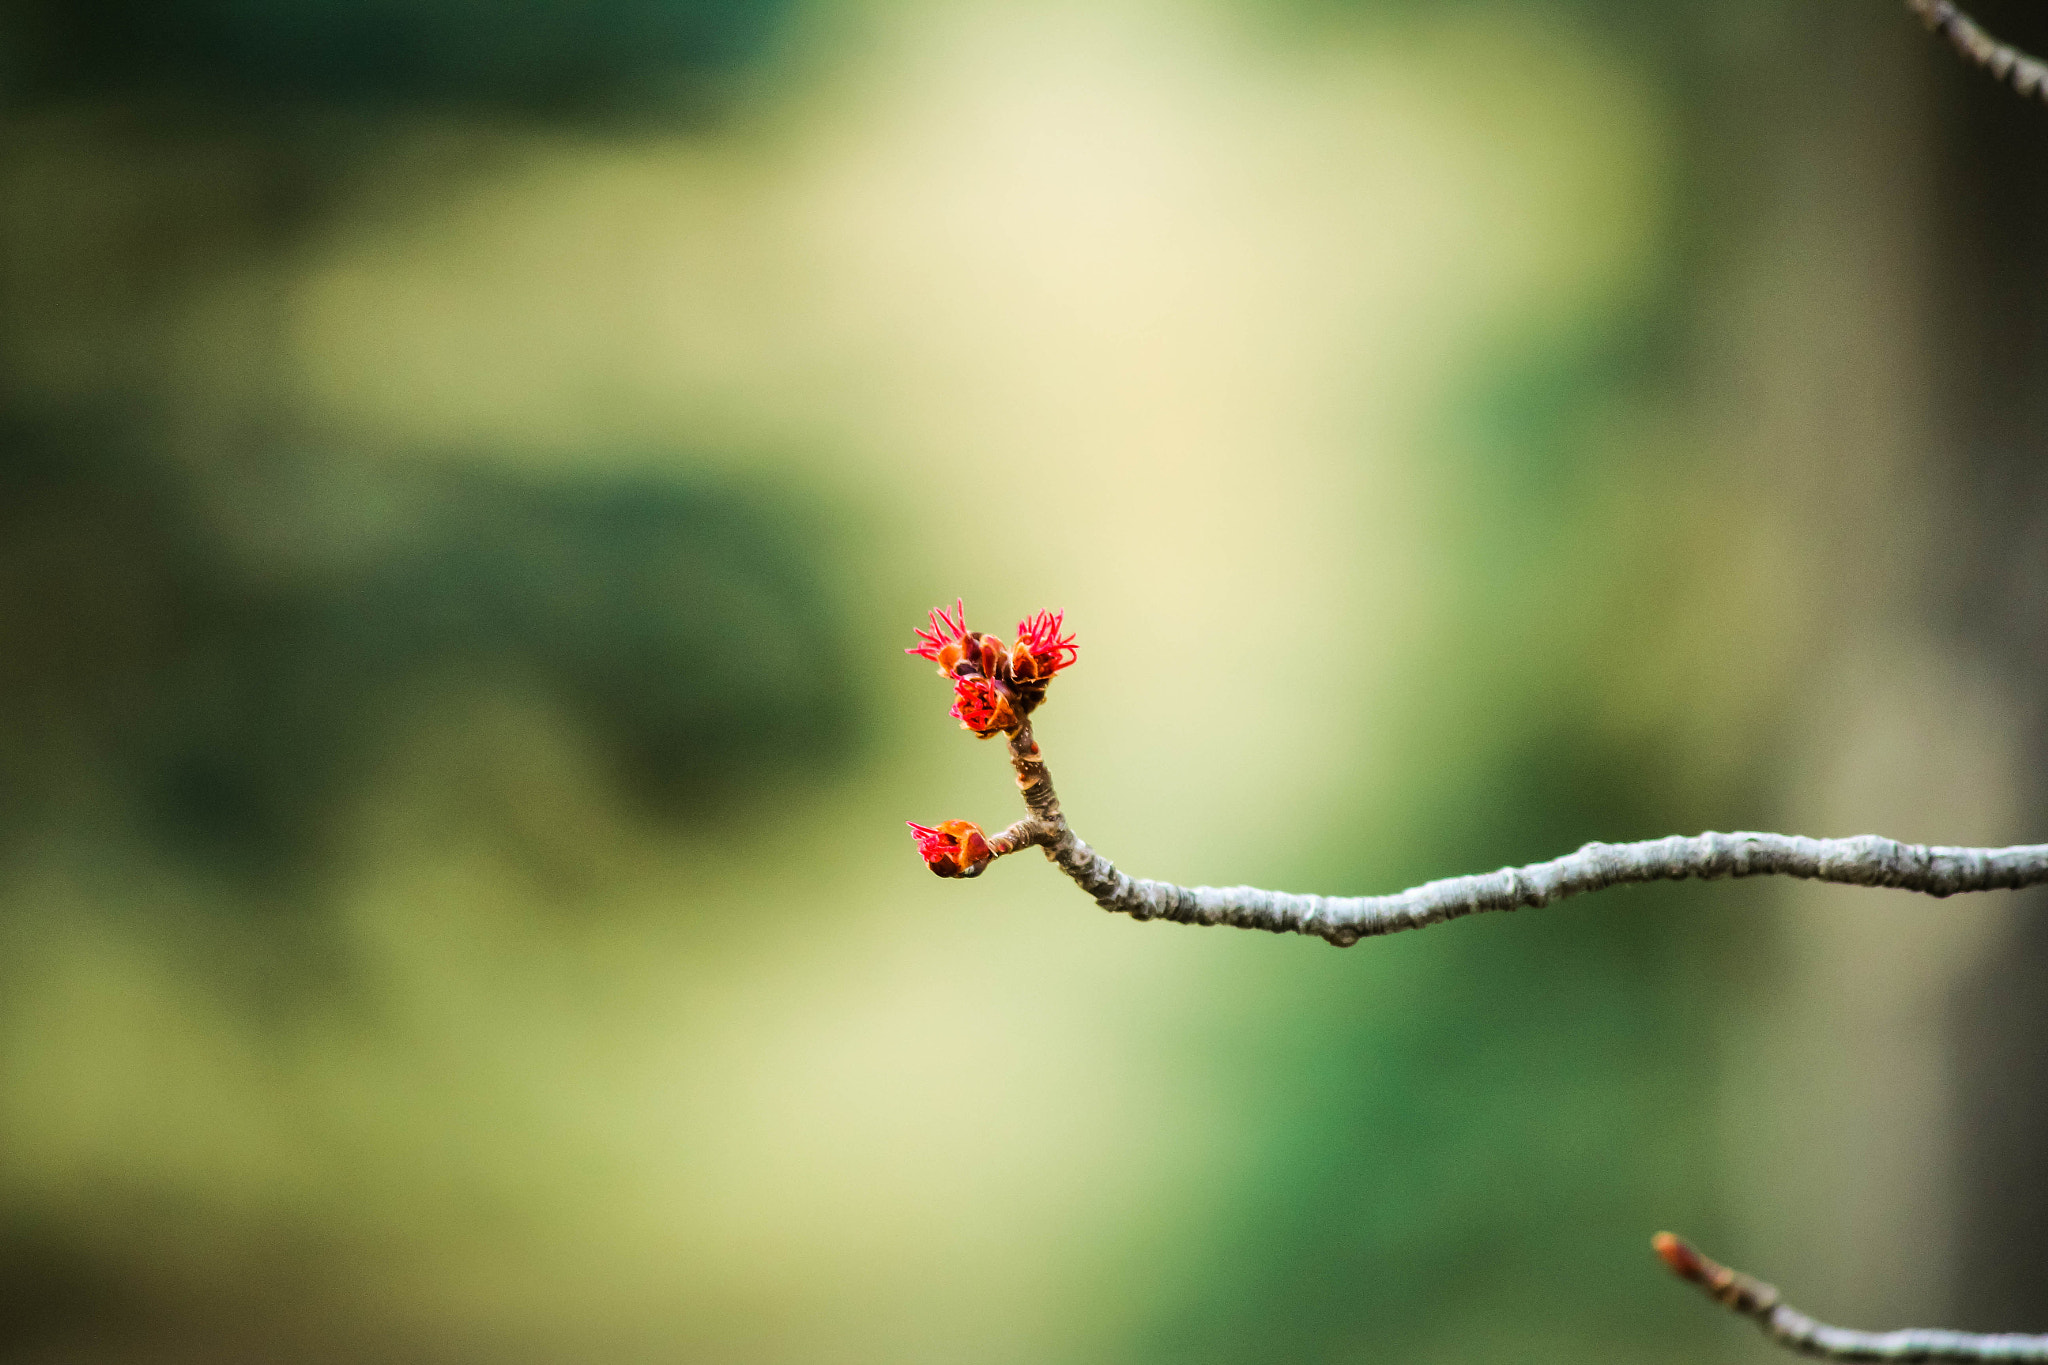 Photograph Budding by Joe Totall on 500px